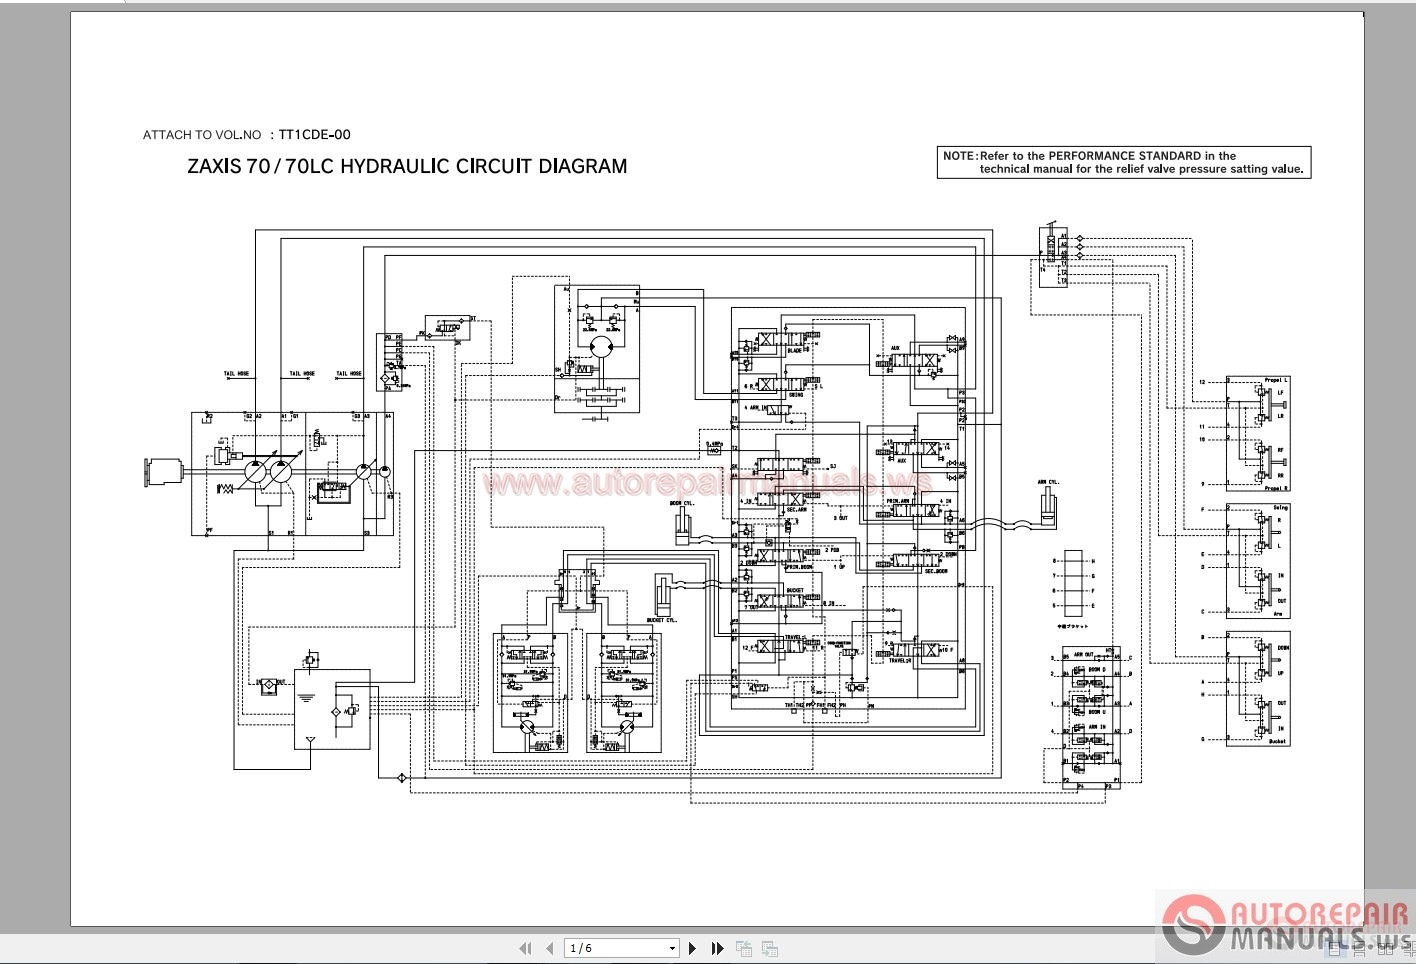 bomag wiring diagram with 14 on Caterpillar 50 Forklift Propane Wiring Diagram Hd in addition Karcher Wiring Diagram further Tennant Wiring Diagram as well Ab Dh Wiring Diagram additionally Wiring Diagram Altec Ta6 Wiring Diagrams.